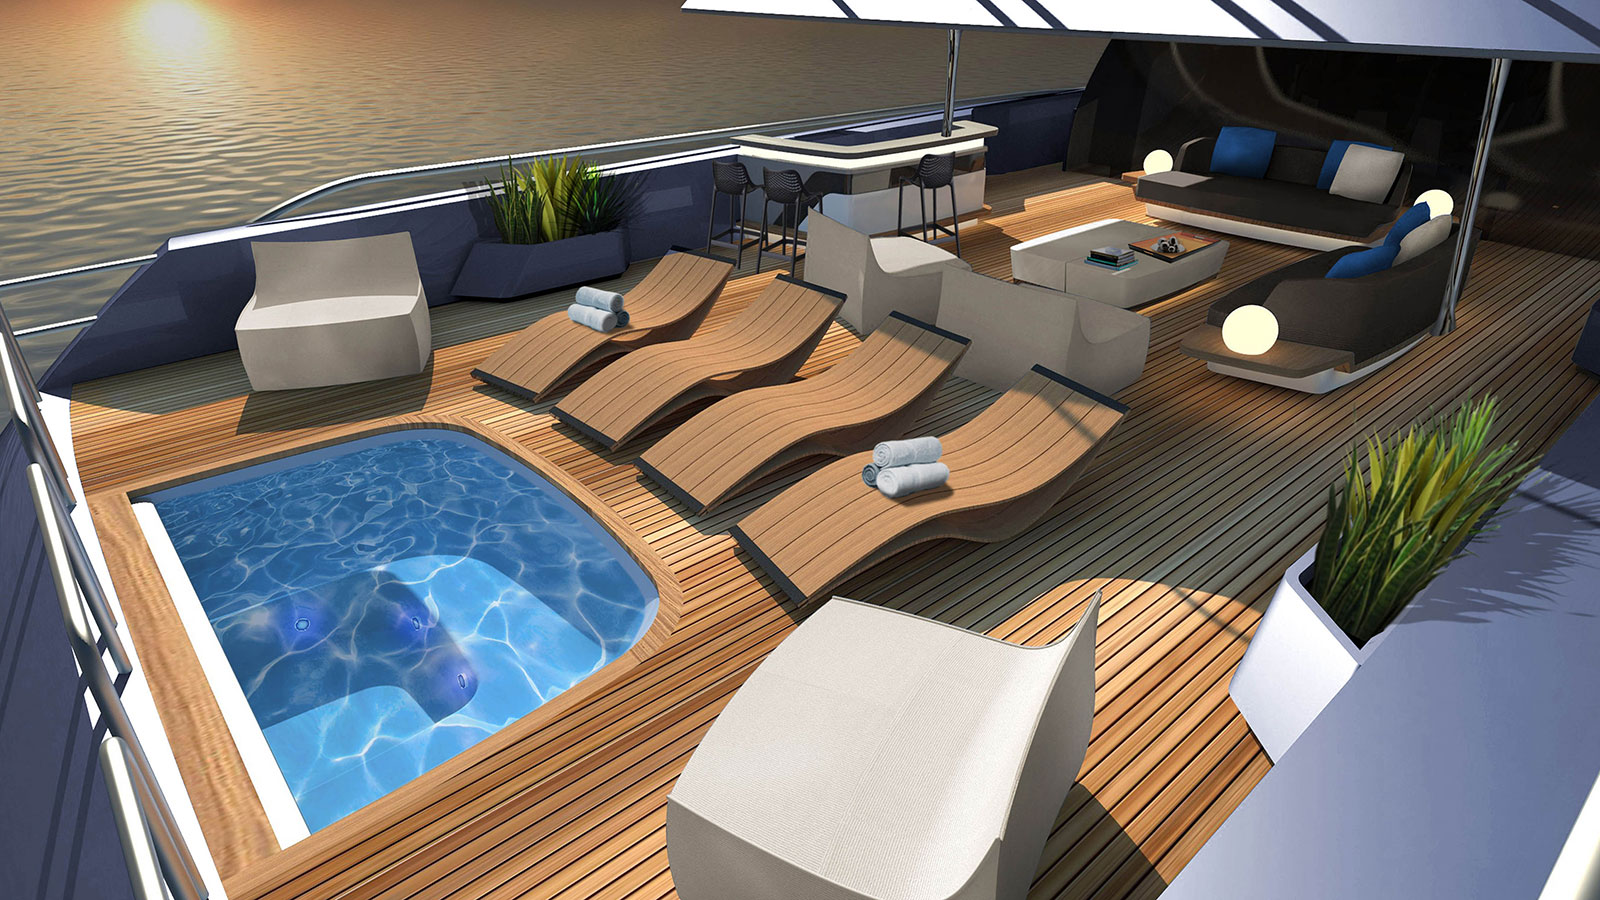 the-aft-deck-of-the-mcconaghy-mc155-trimaran-concept